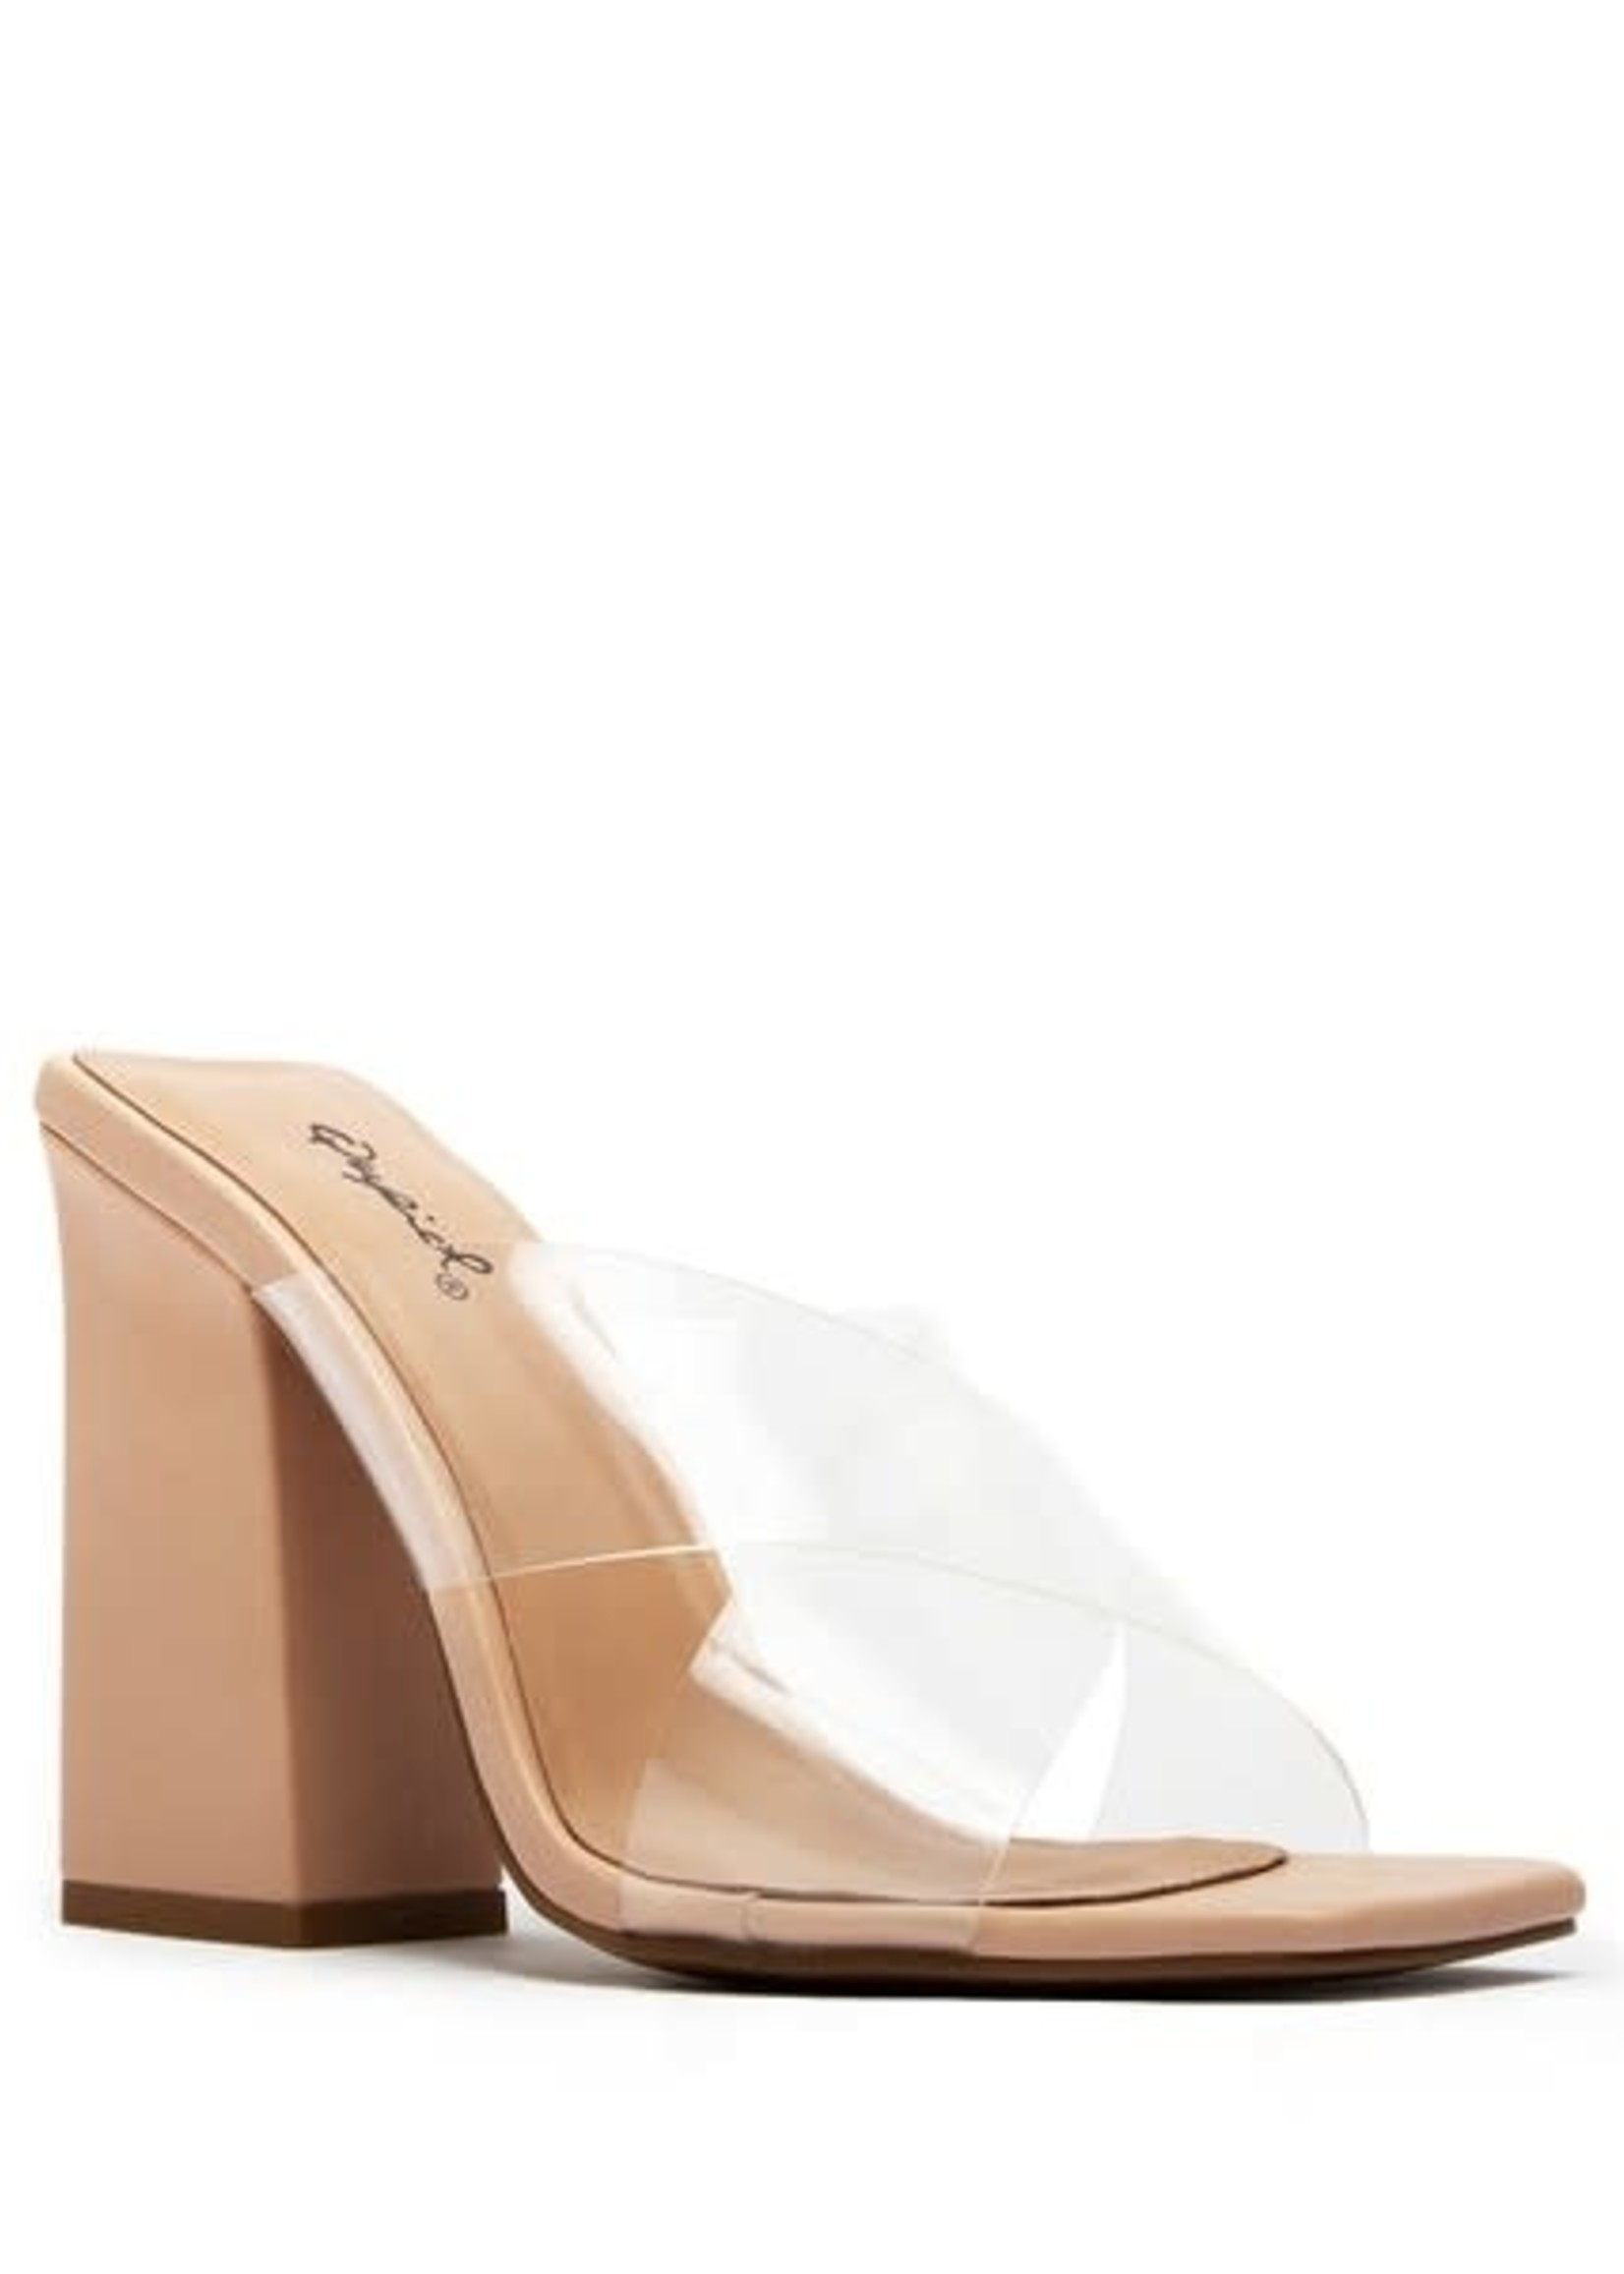 Best Party Acrylic Nude Slide